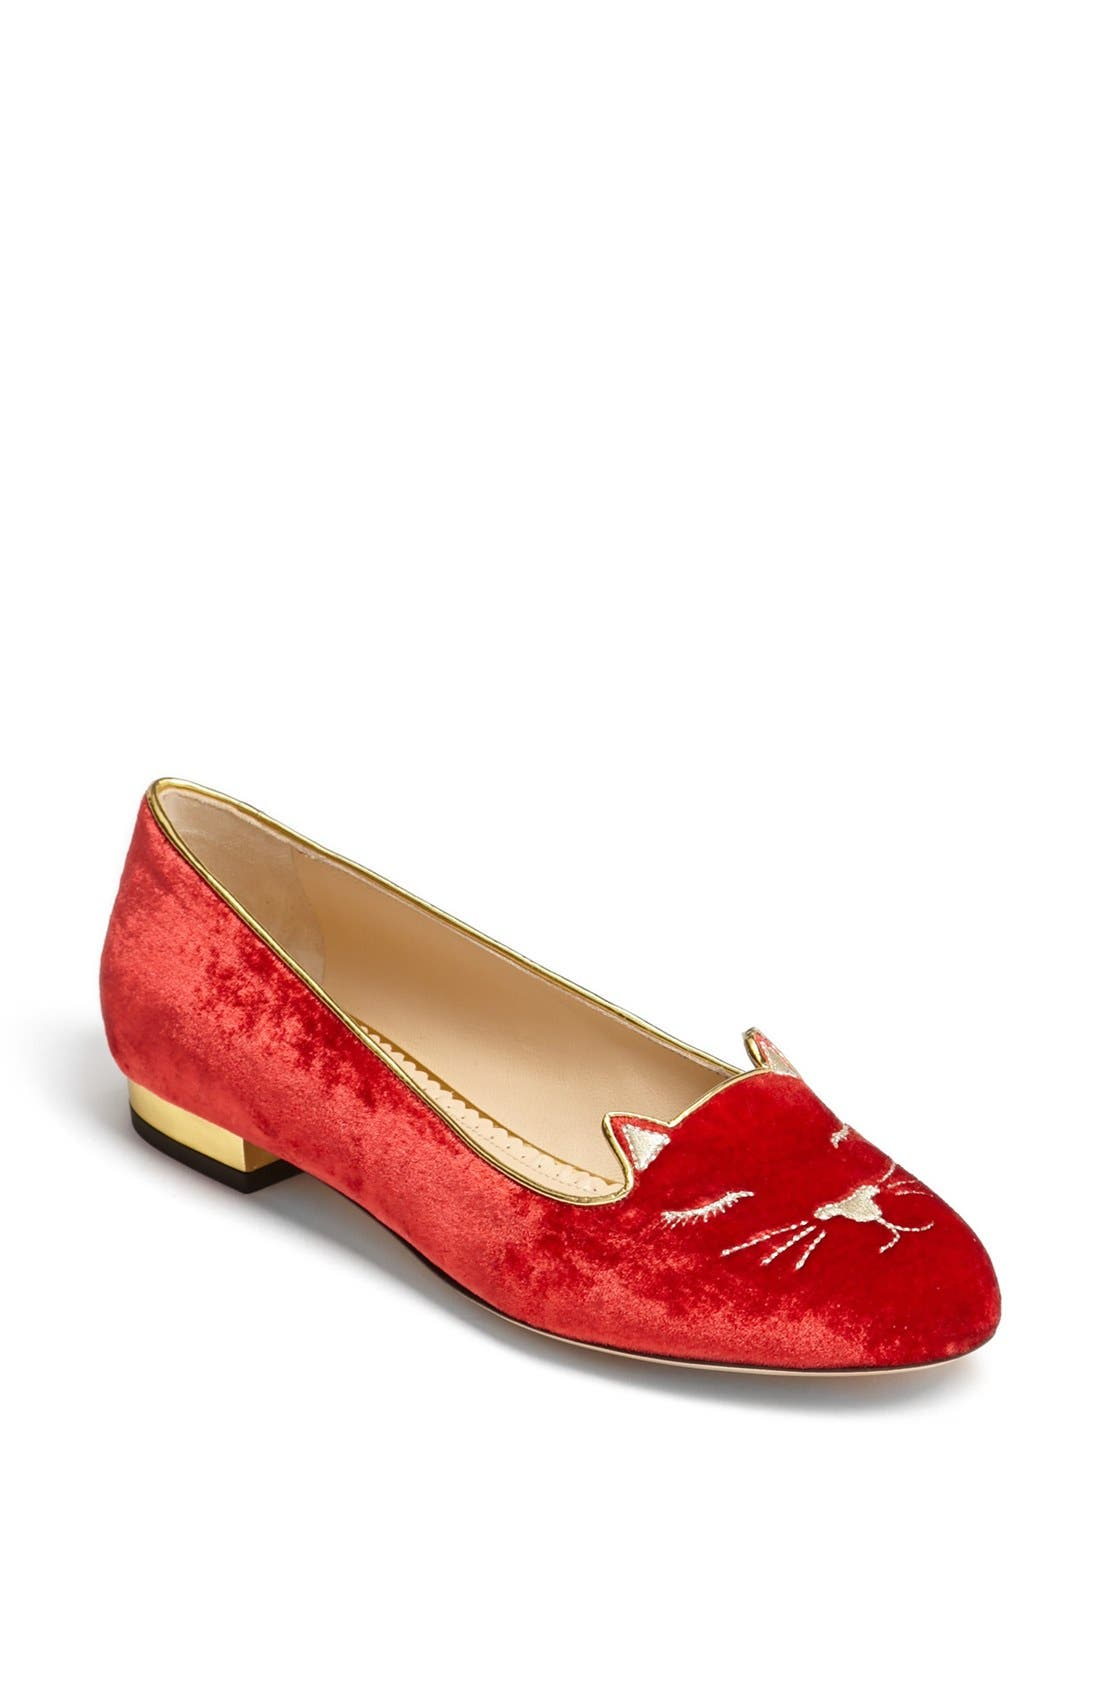 Main Image - Charlotte Olympia 'Sleeping Kitty' Flat